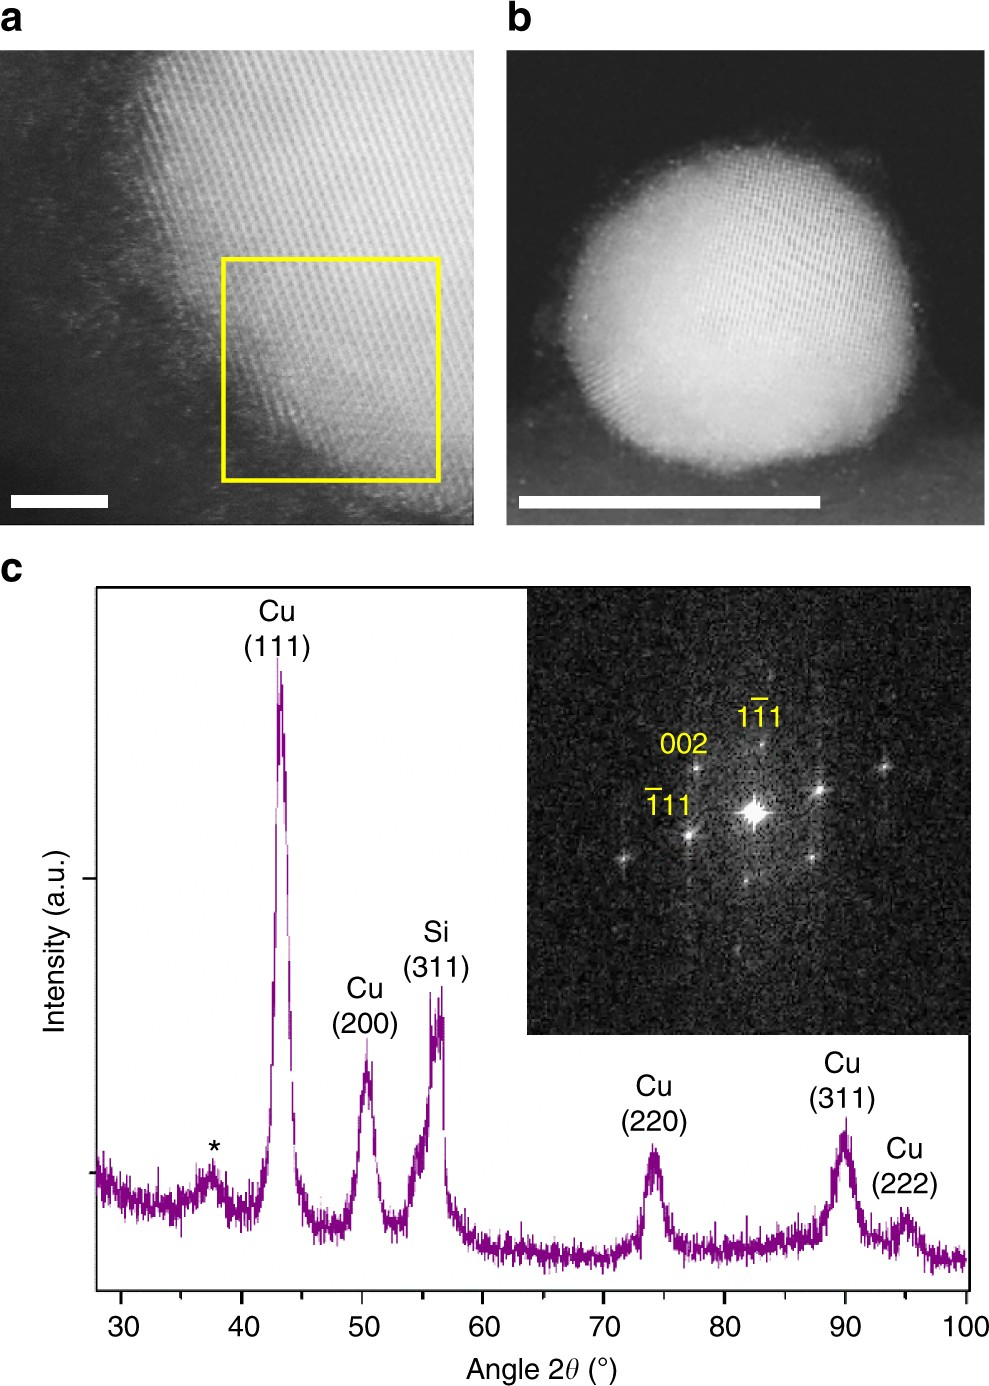 Retarding oxidation of copper nanoparticles without electrical